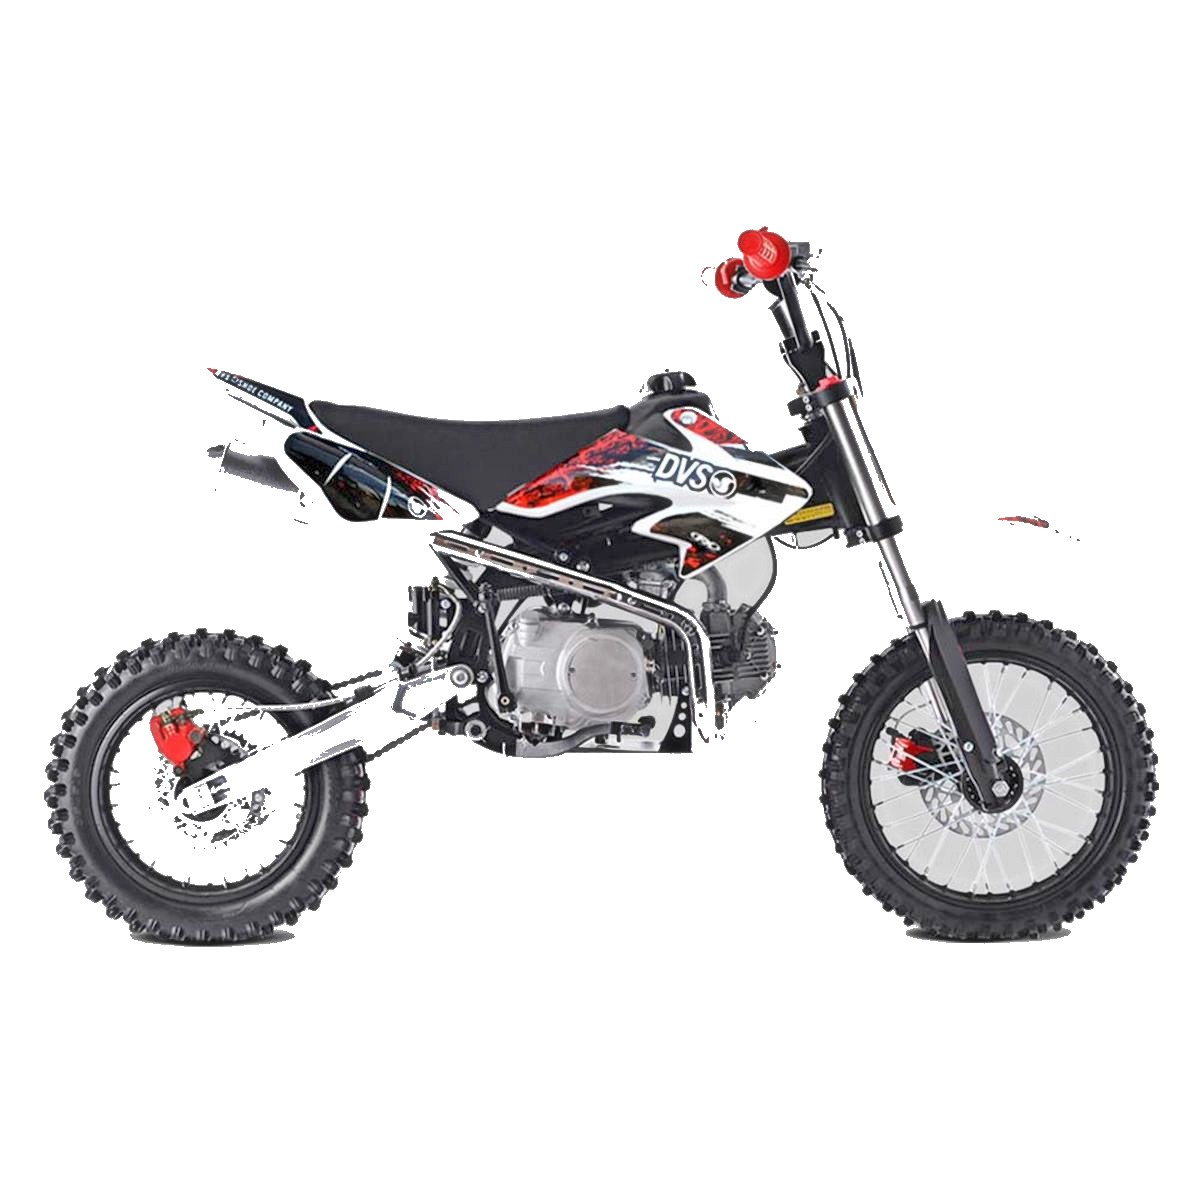 KIT DECO DVS CRF50 DIRT BIKE